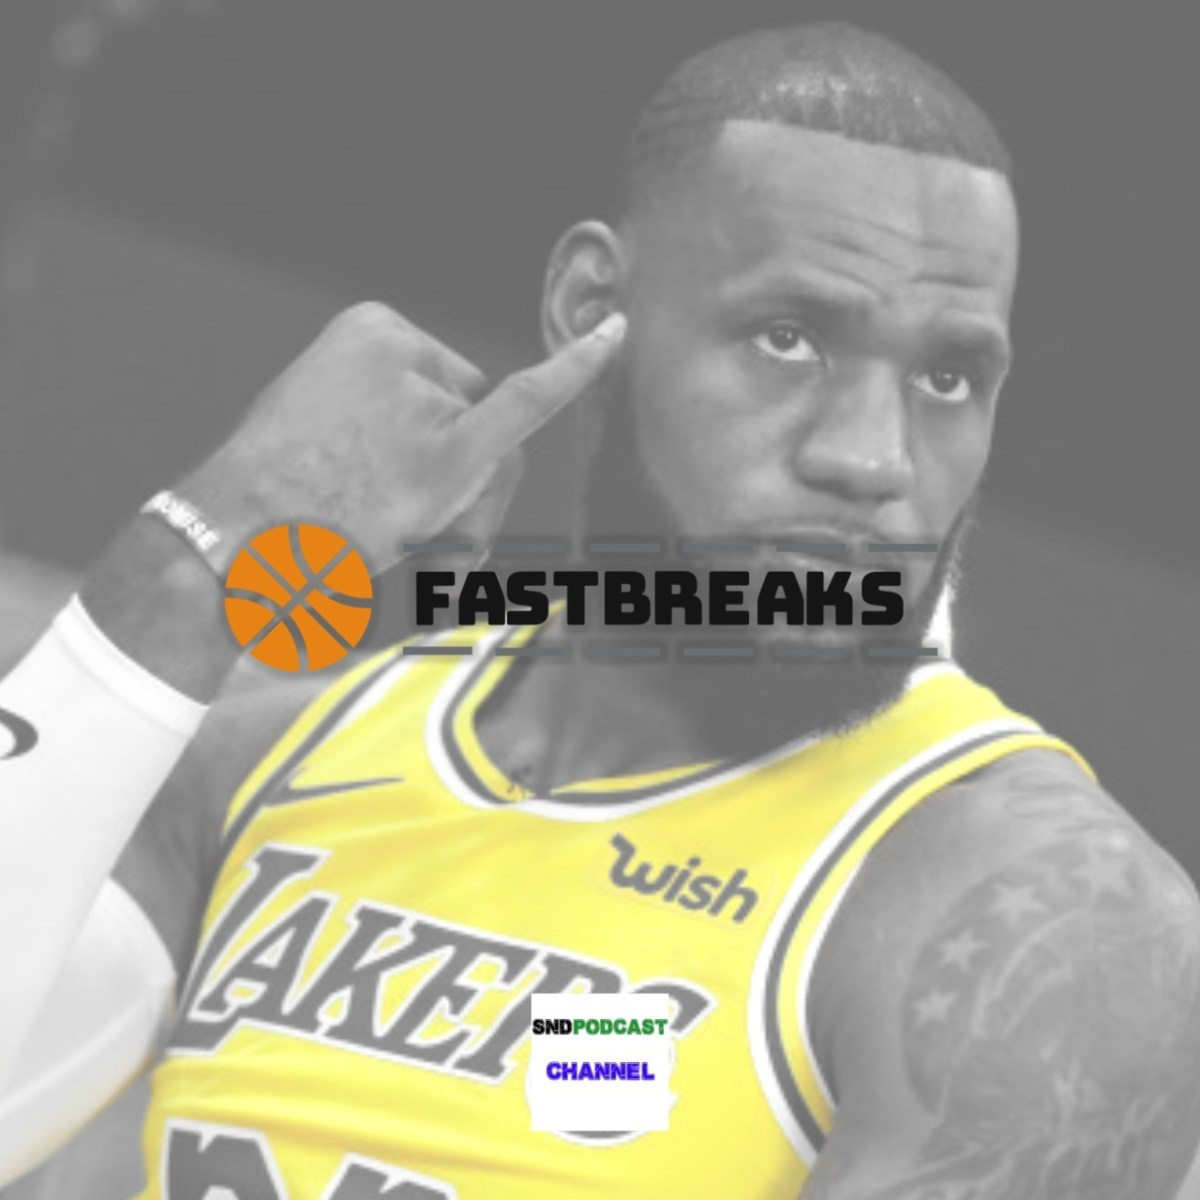 FASTBREAKS EP. 23: Presented By The Soapbox: Back With A Vengeance